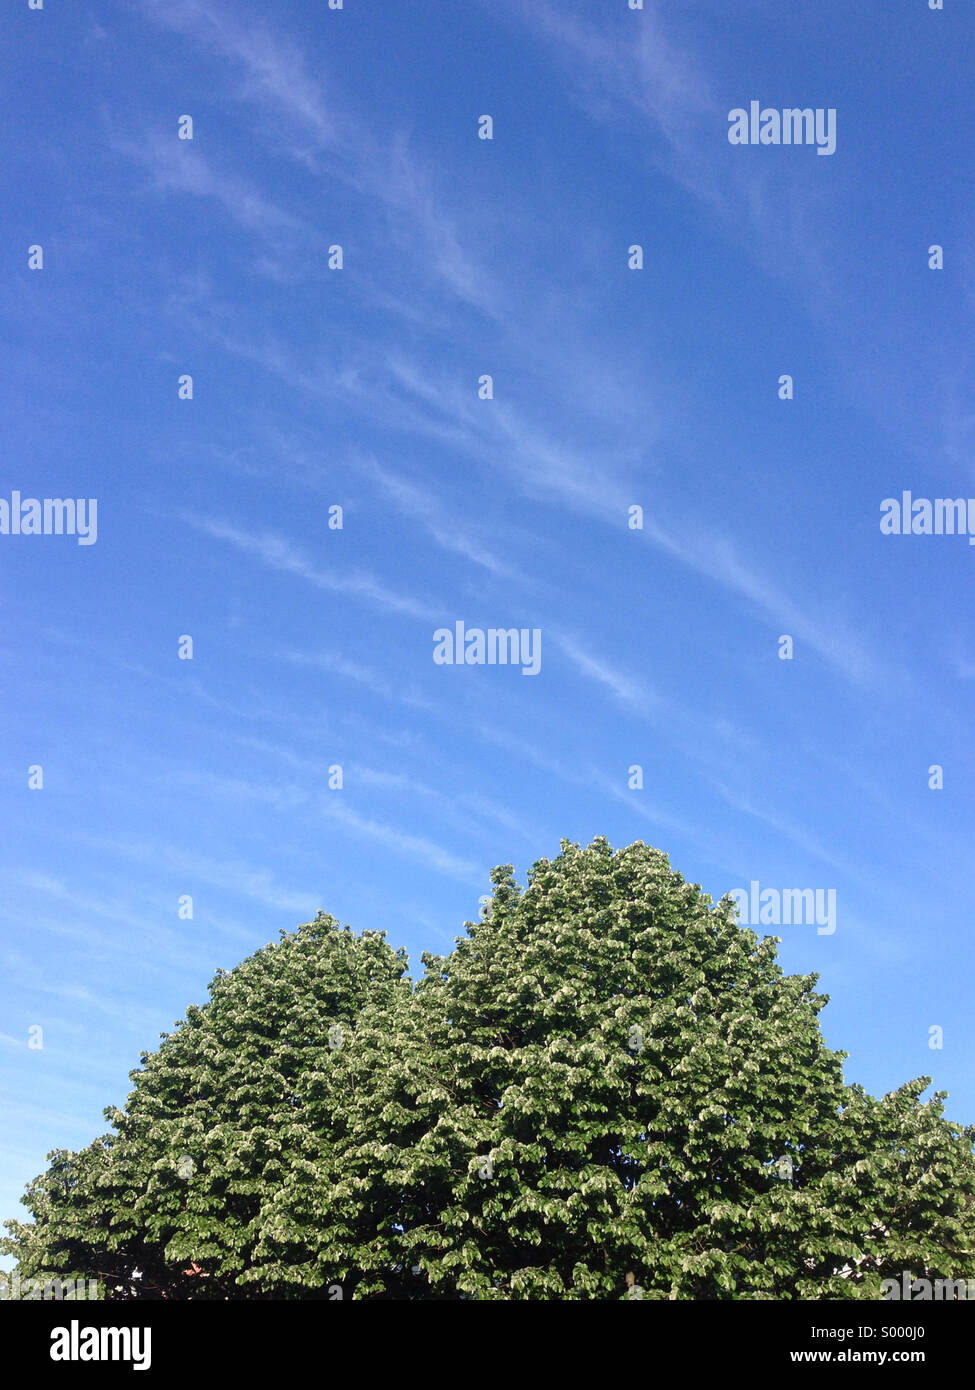 Two trees with blue skies above. - Stock Image